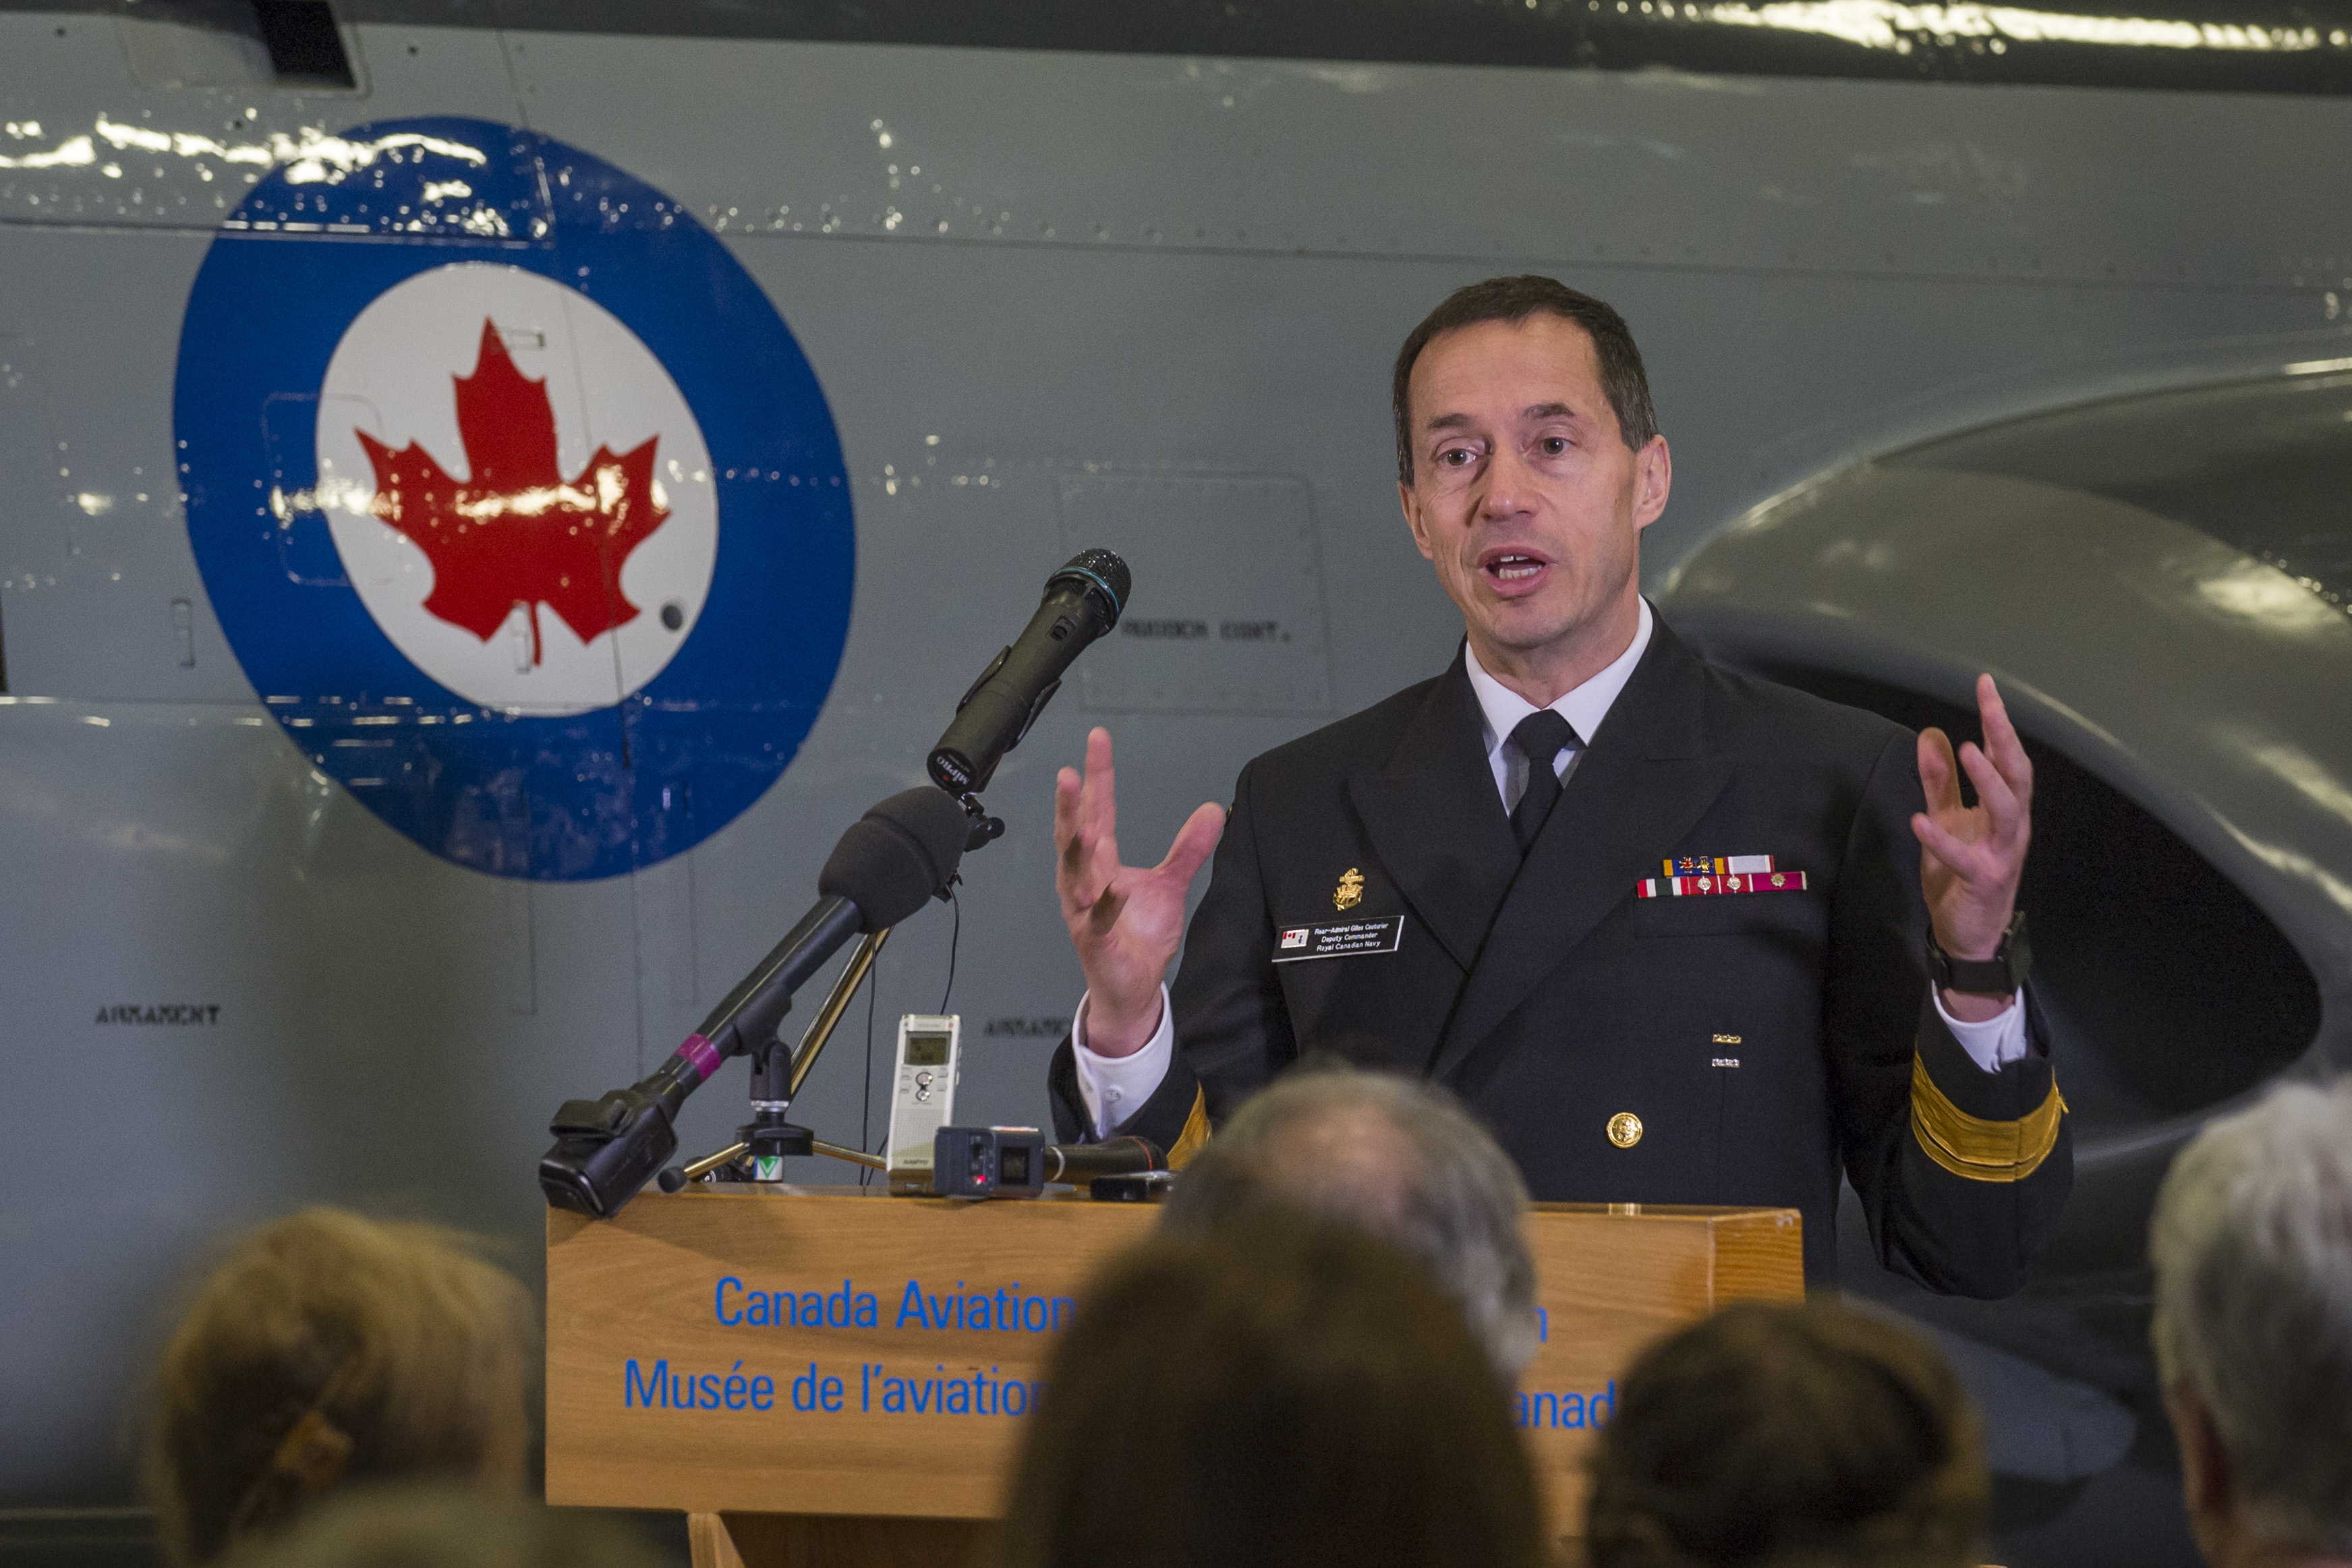 Rear Admiral Gilles Couturier speaks to the Troy family and members of the RCN and RCAF about being part of a family. PHOTO: Corporal Alana Morin, FA03-2018-0038-047